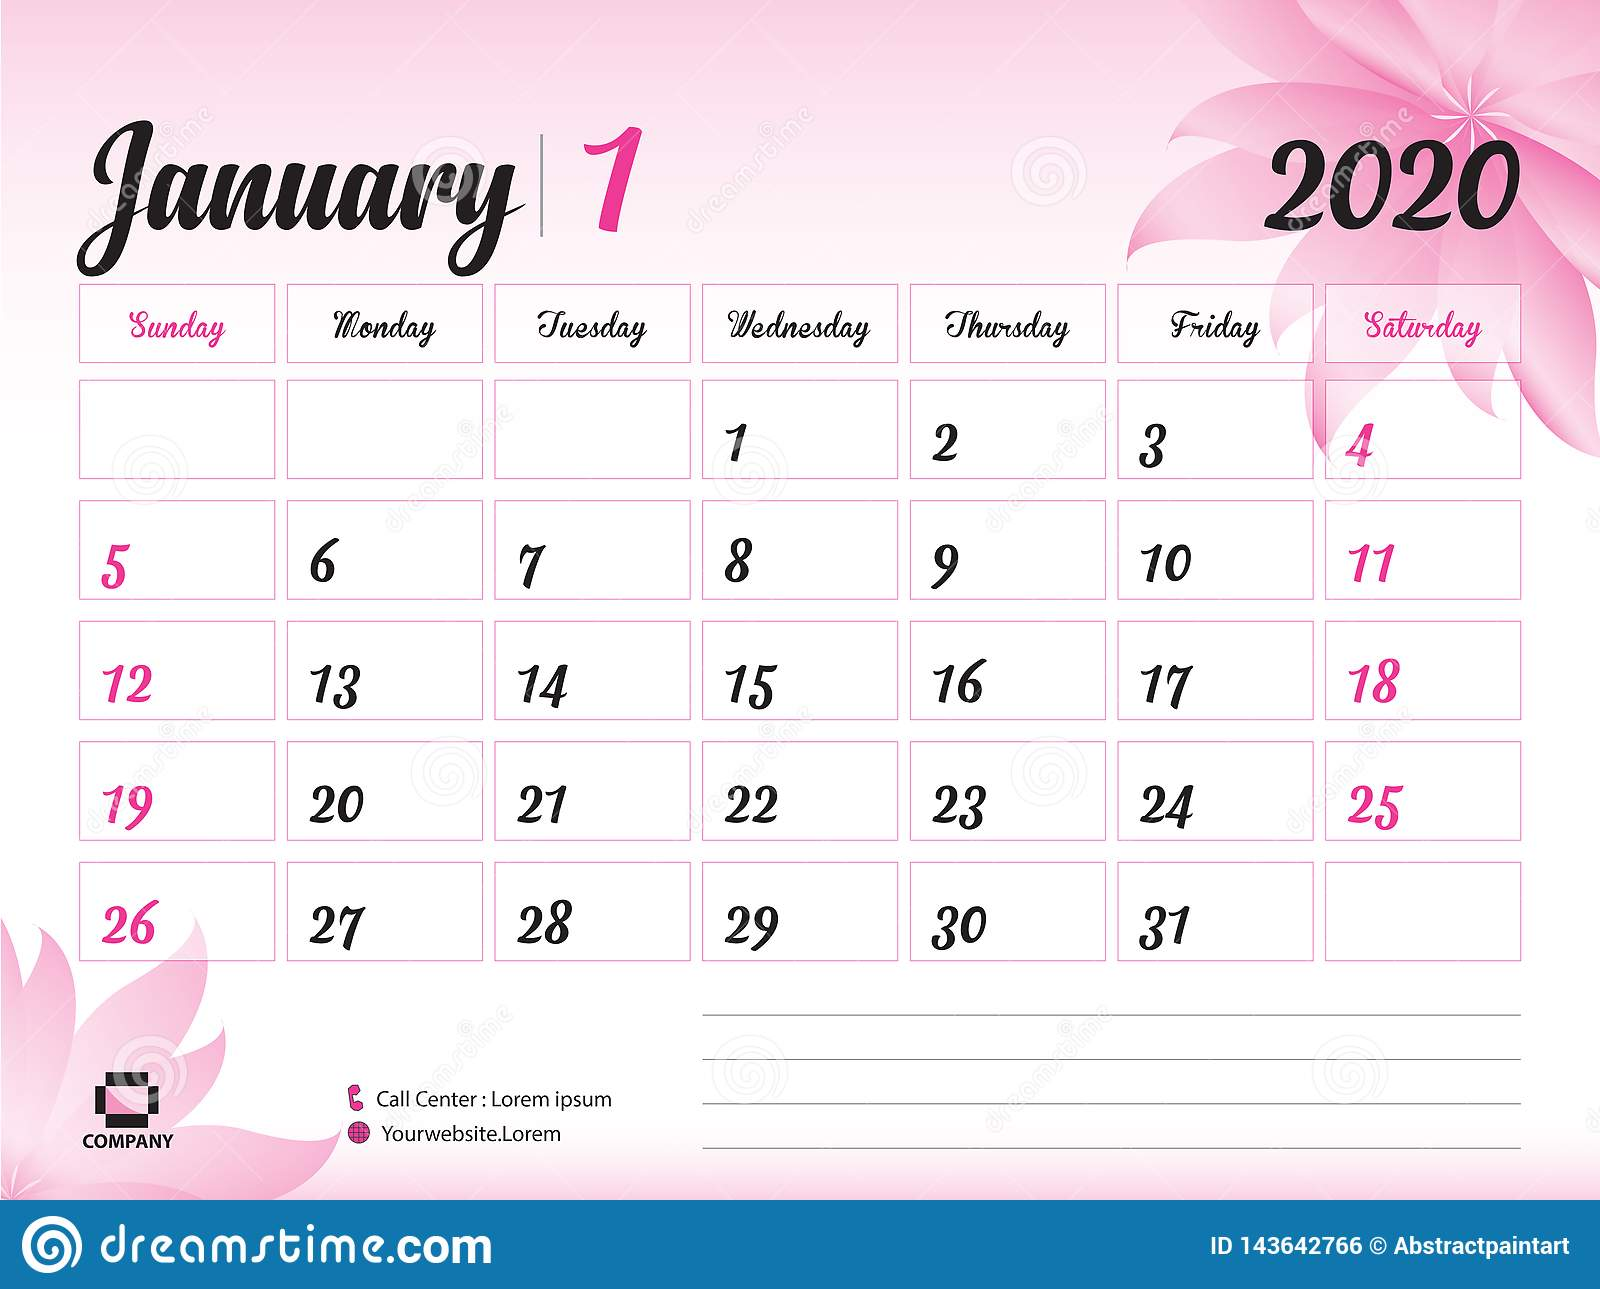 Calendar 2020 January January 2020 Year Template, Calendar 2020 Vector, Desk Calendar